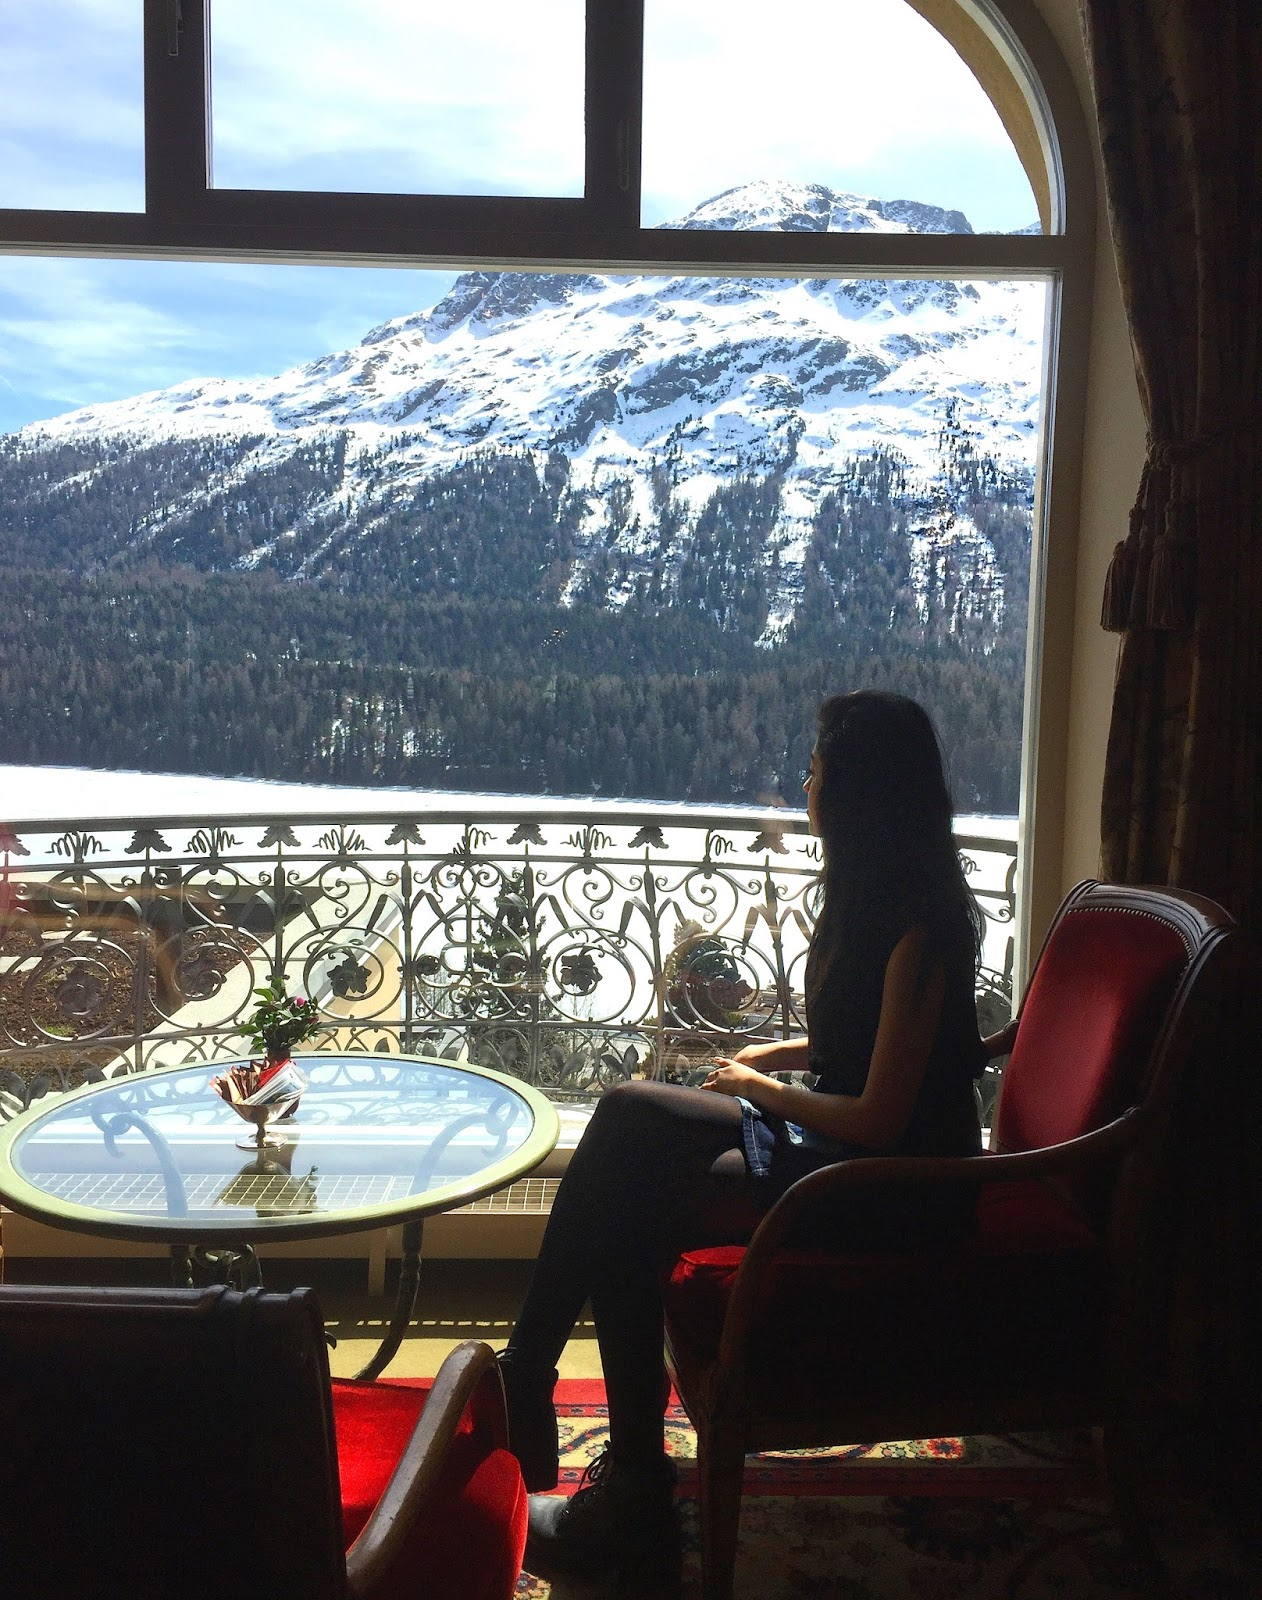 Luxury Hotel View in St Moritz